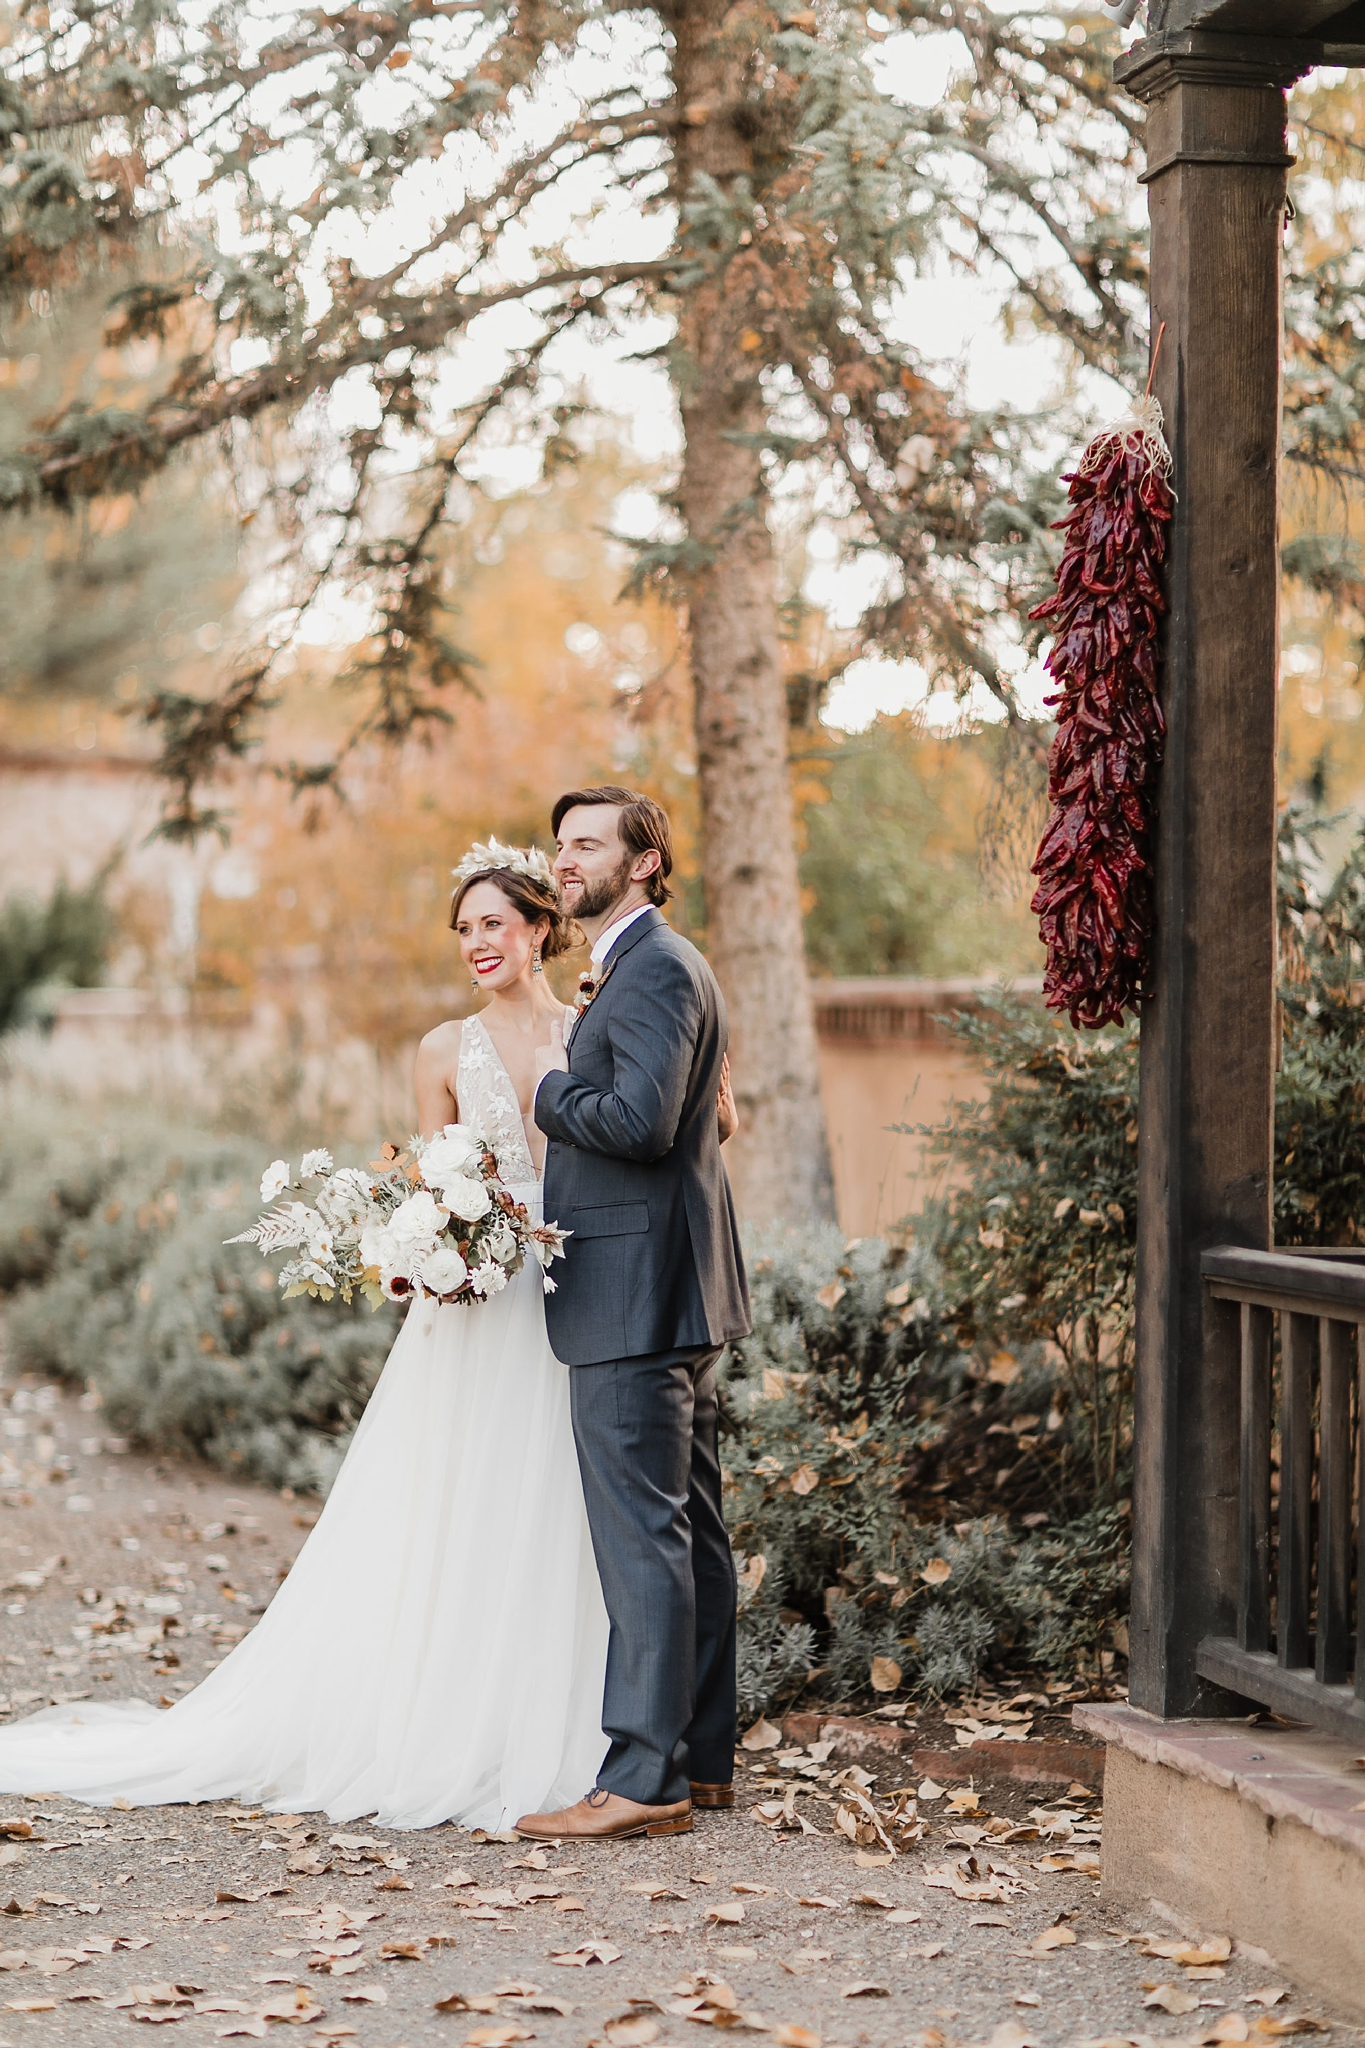 Alicia+lucia+photography+-+albuquerque+wedding+photographer+-+santa+fe+wedding+photography+-+new+mexico+wedding+photographer+-+new+mexico+wedding+-+albuquerque+wedding+-+rocky+mountain+bride+-+los+poblanos+wedding_0081.jpg